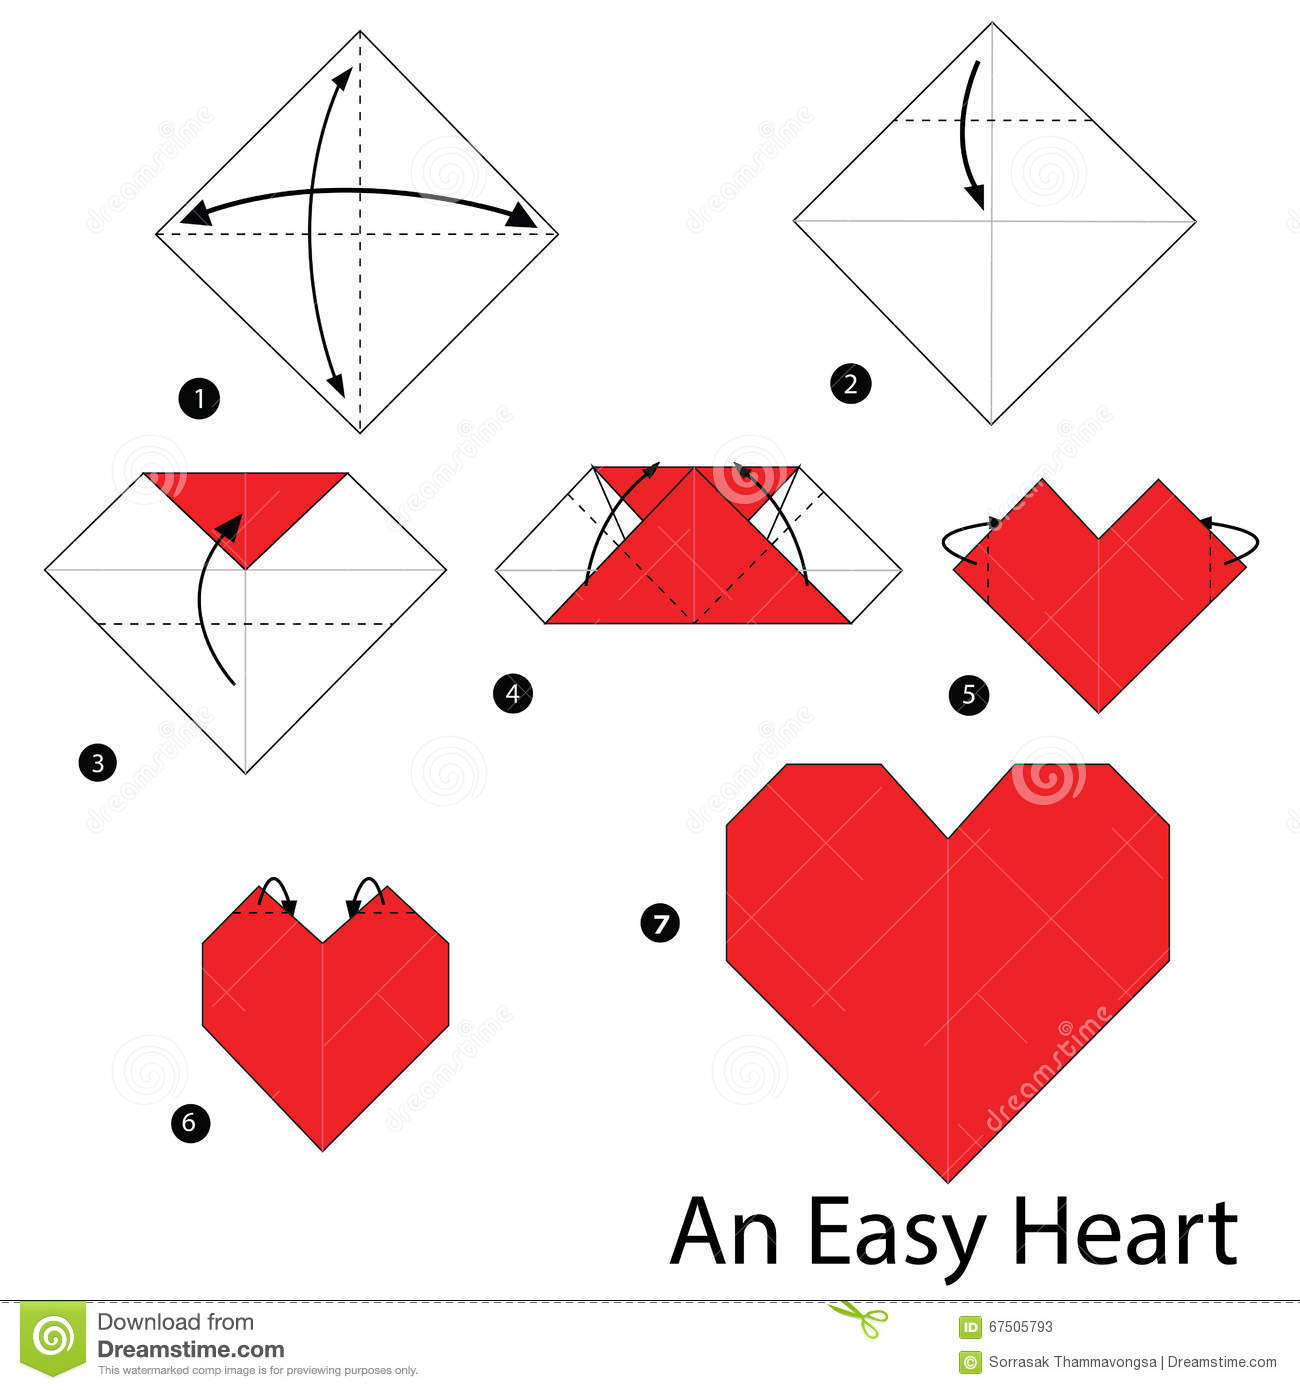 Instructions tape par tape comment faire origami un coeur facile illustration de vecteur - Origami fleur coeur d etoile ...